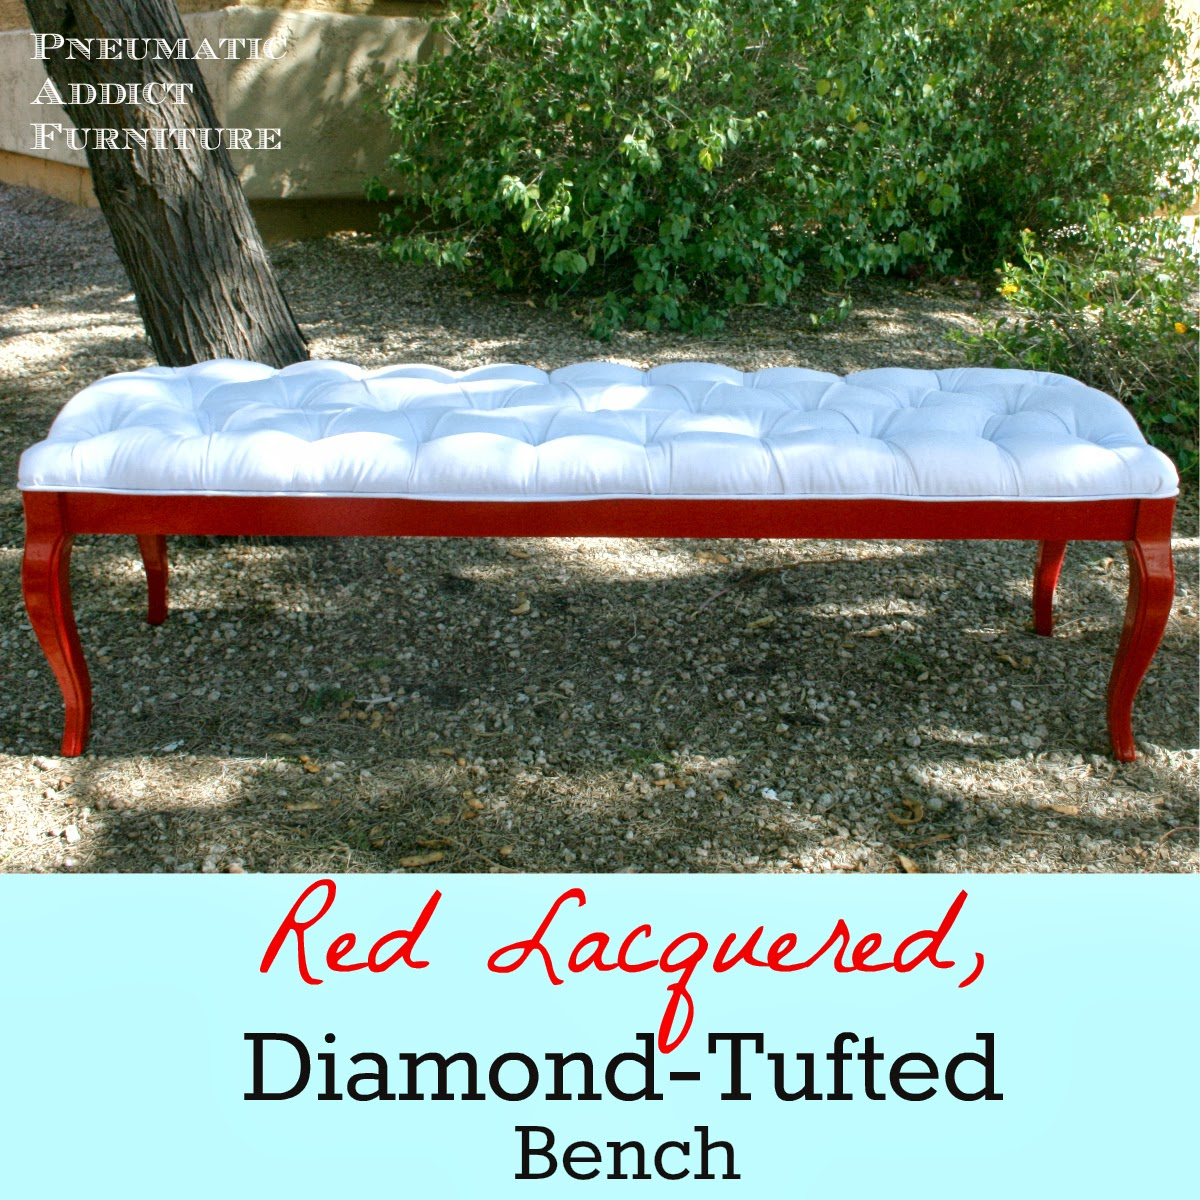 pneumatic addict coffee table turned tufted bench